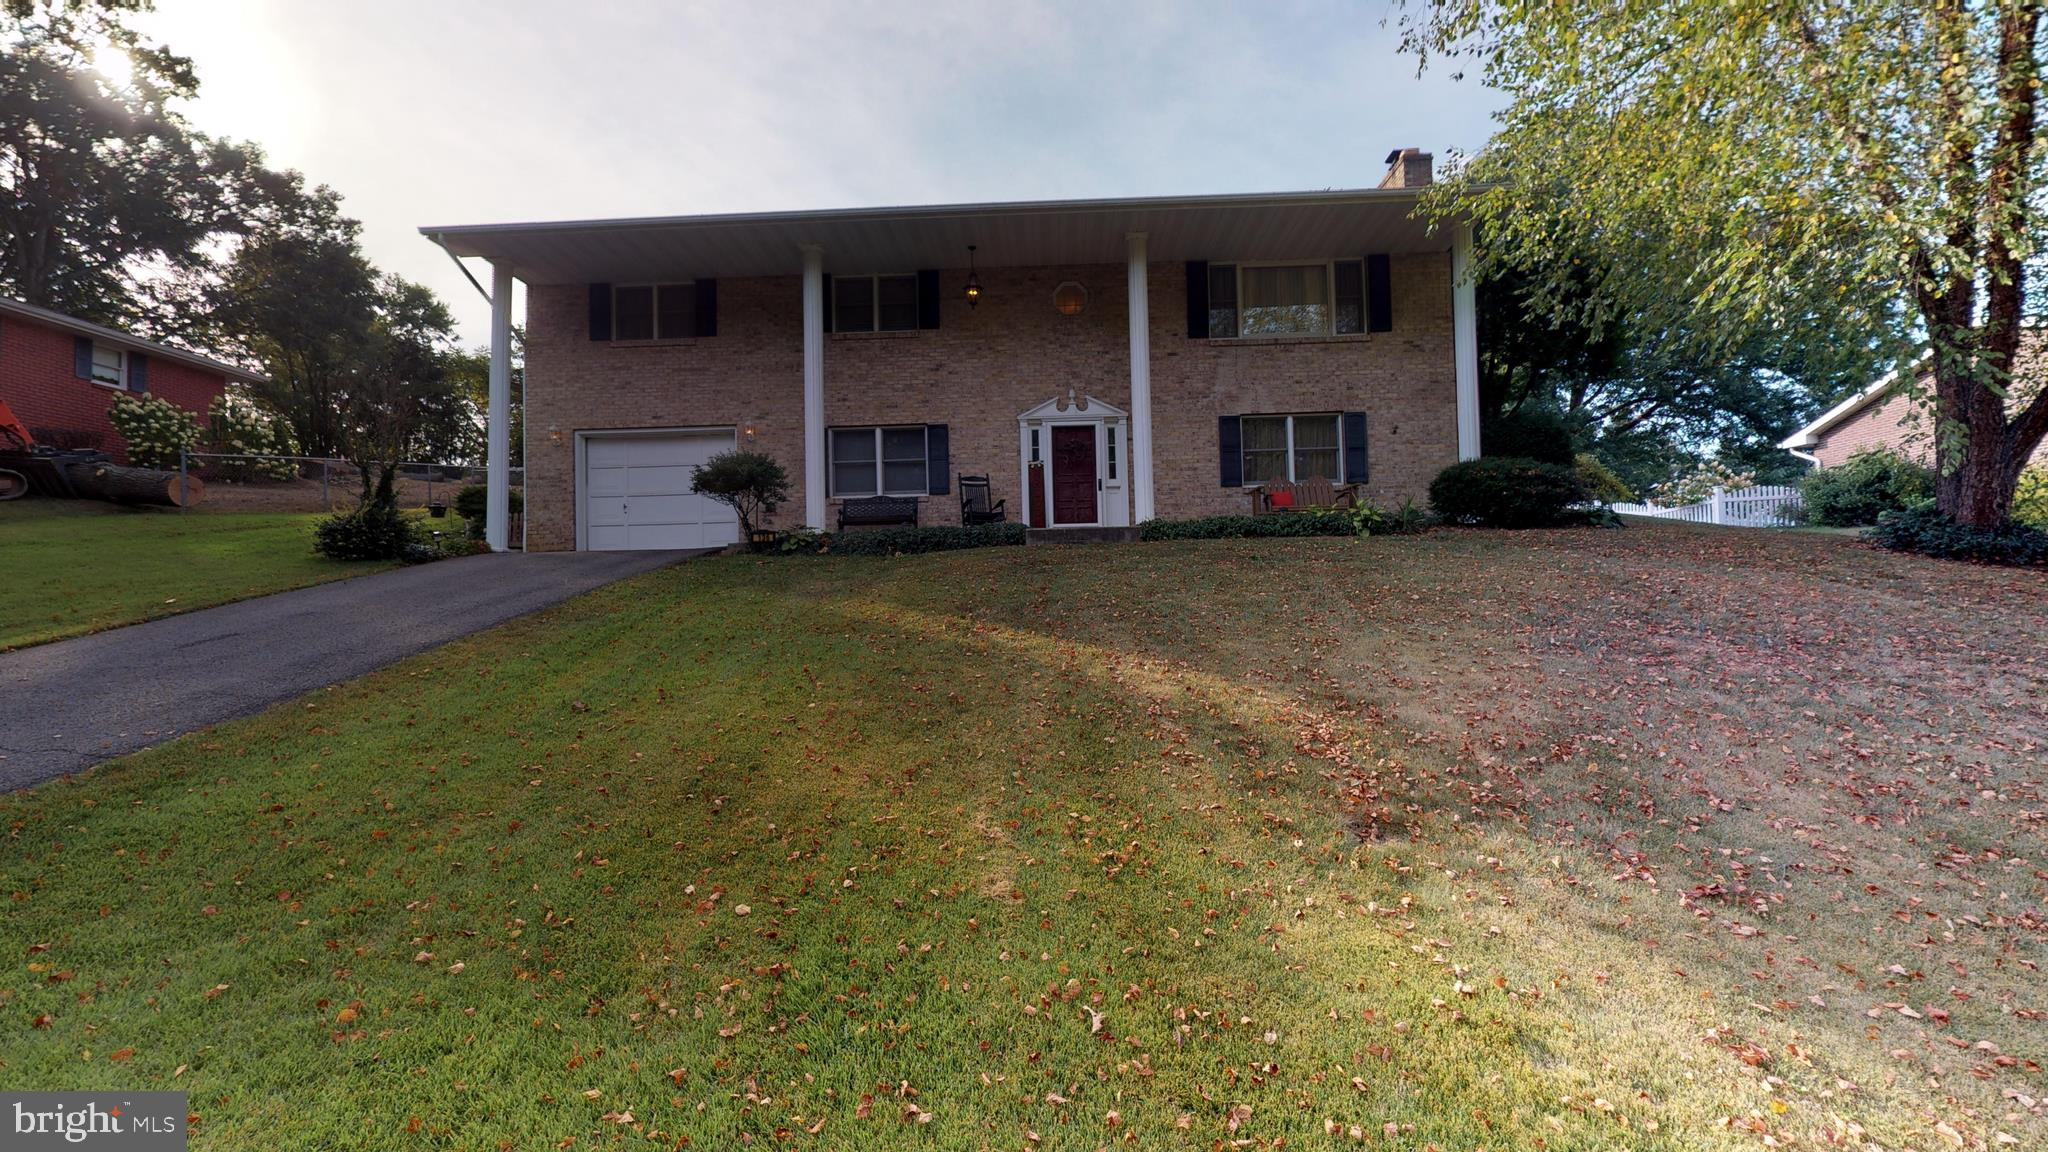 136 LEON DRIVE, FORT ASHBY, WV 26719